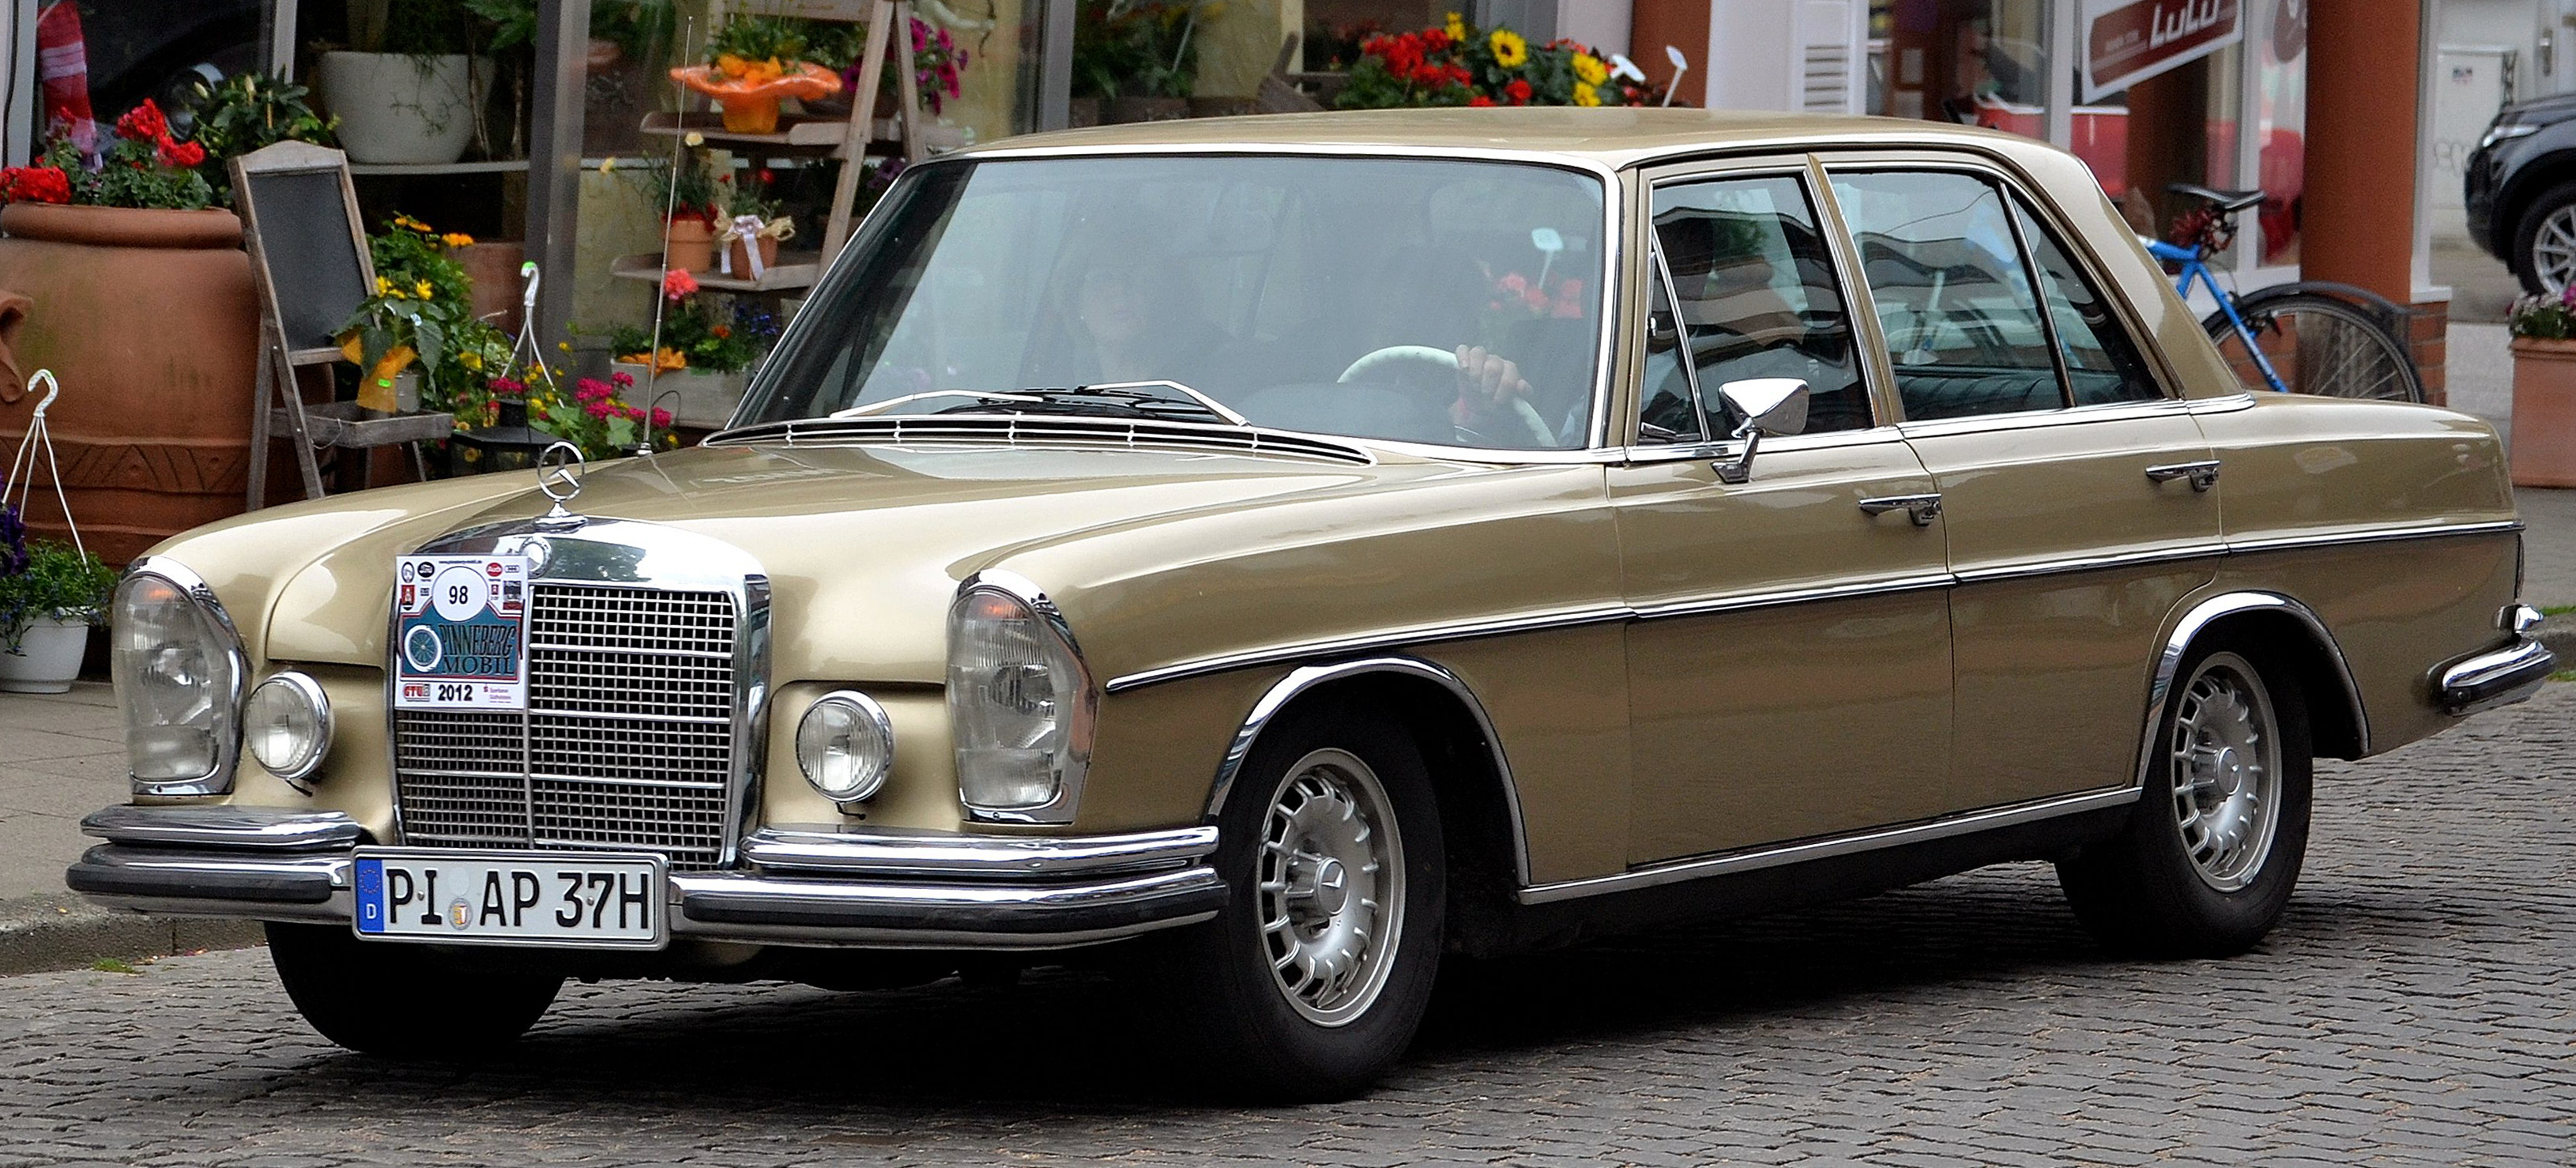 file mercedes benz 280 se w108 1971 wikimedia. Black Bedroom Furniture Sets. Home Design Ideas